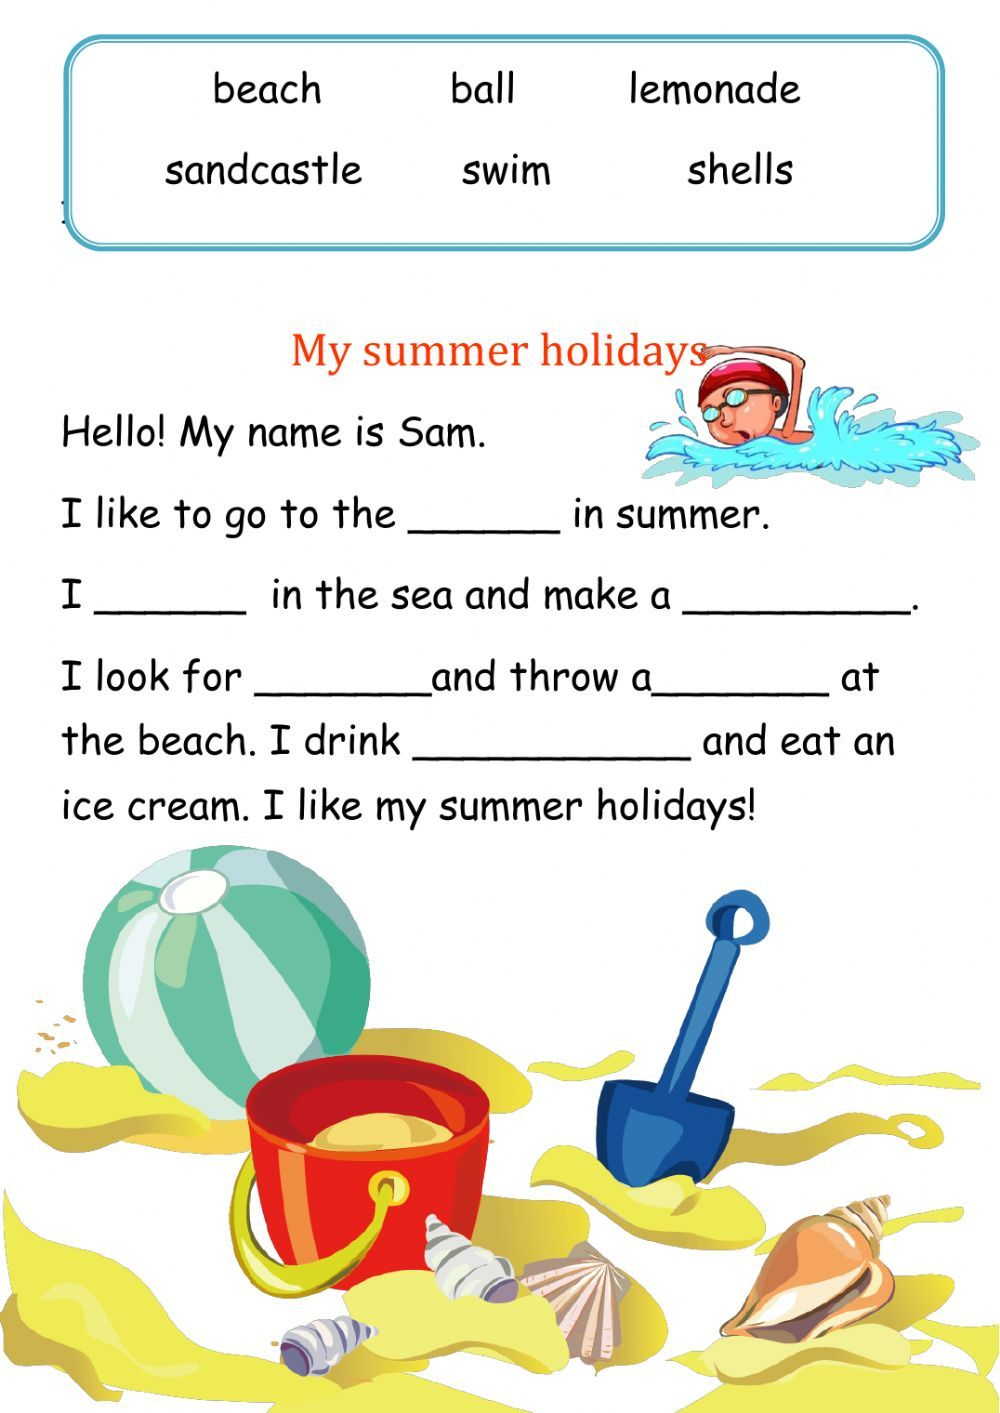 hight resolution of Reading comprehension online activity for Grade 2. You can do the exercises  online or dow…   Reading comprehension